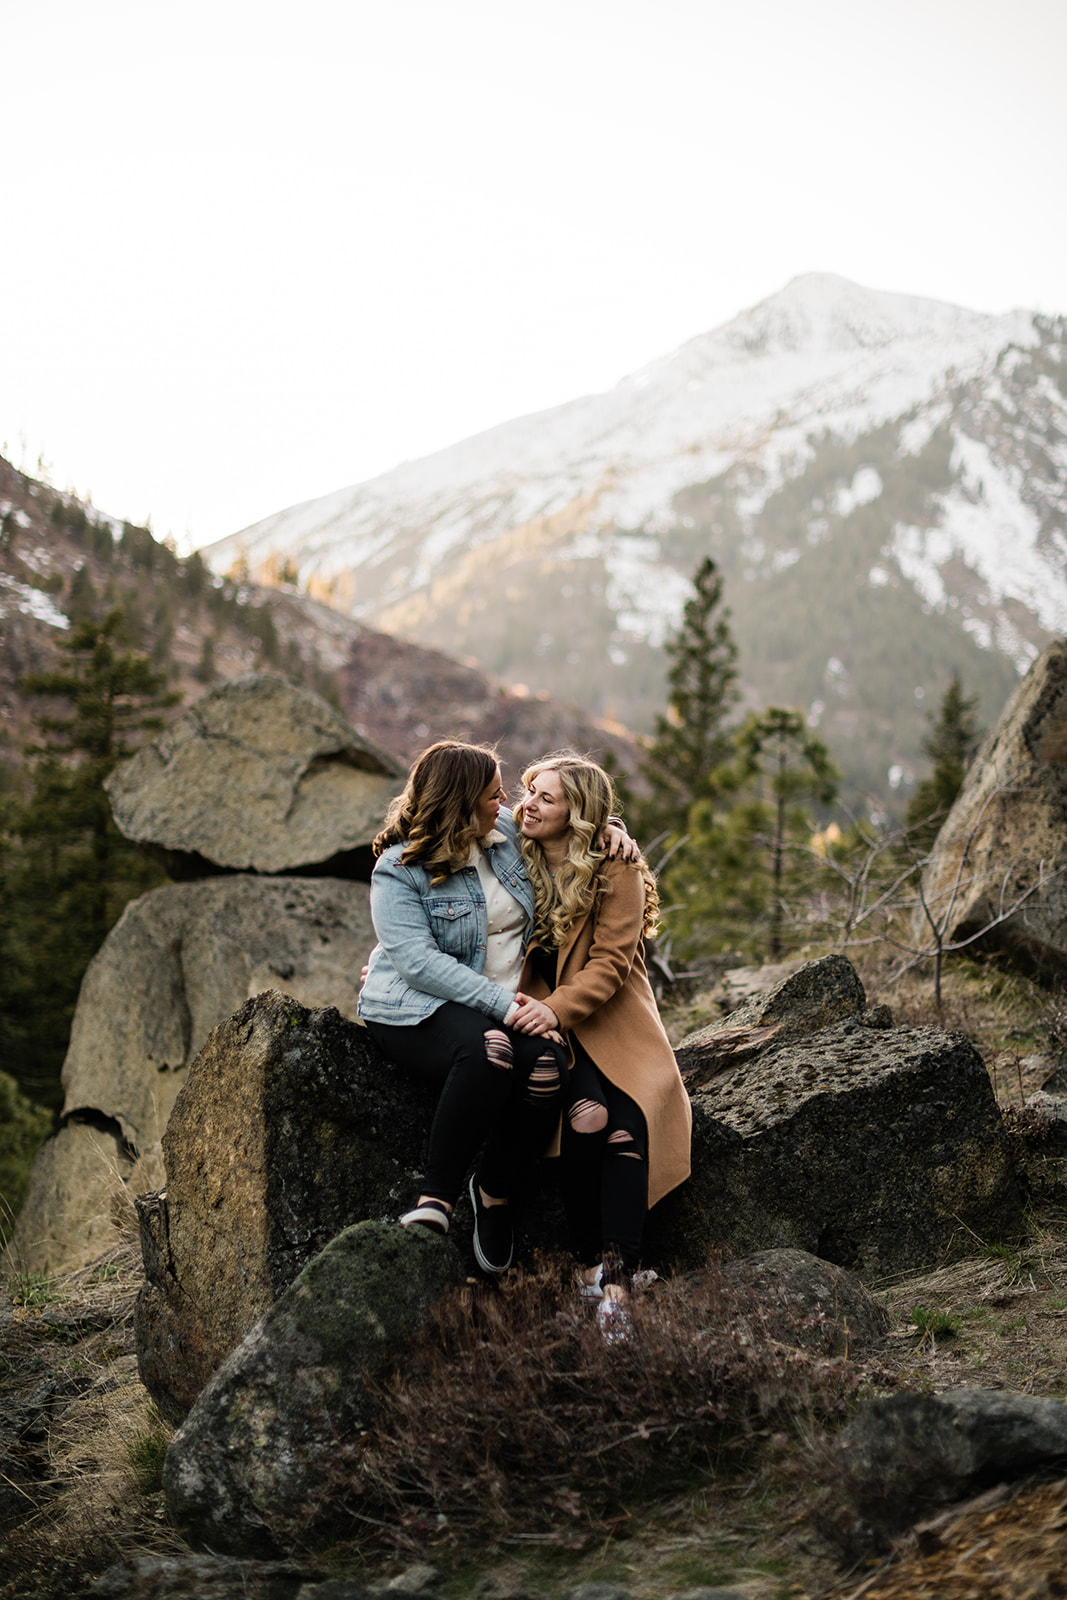 LGBTQ Adventure Mountain Leavenworth Engagement Session - Courtney and Taylor. Forthright Photo - Seattle Wedding & Elopement Adventure Photographers